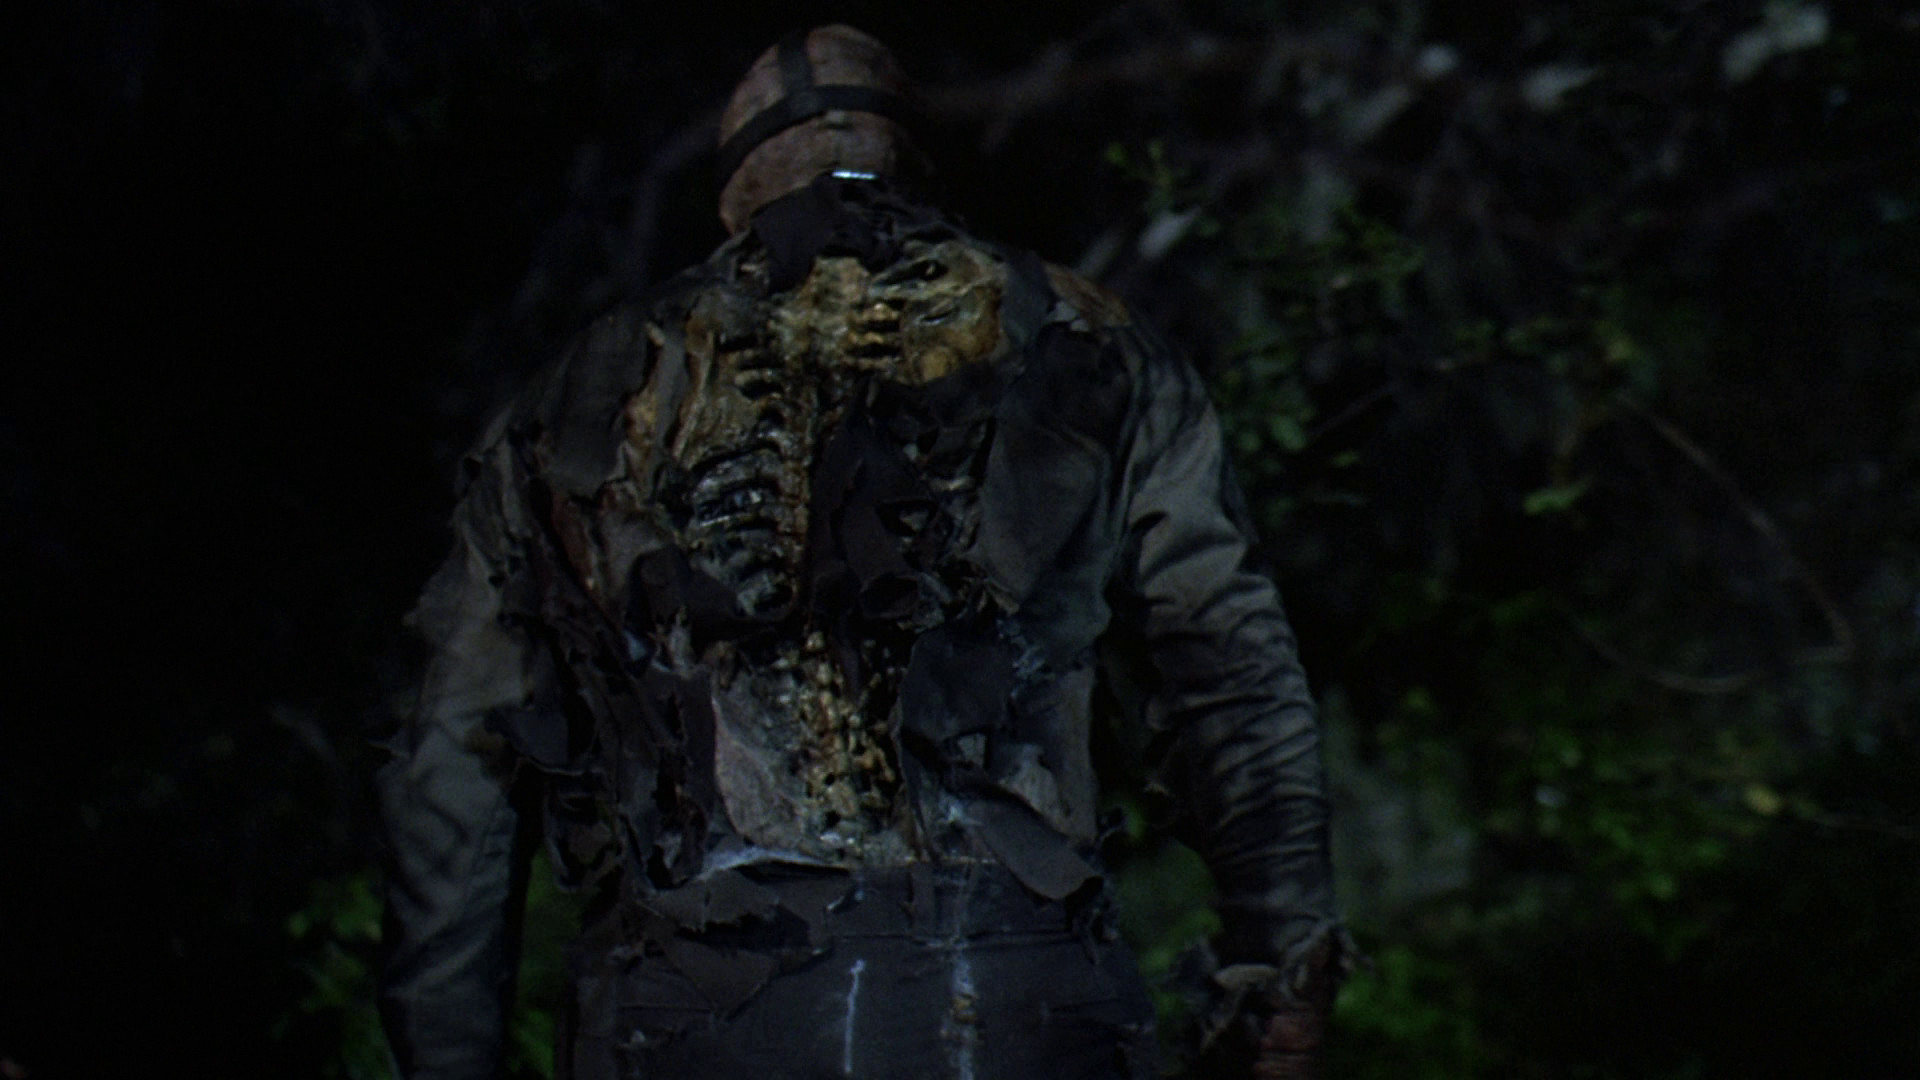 Friday The 13th Part VII: The New Blood pic 2